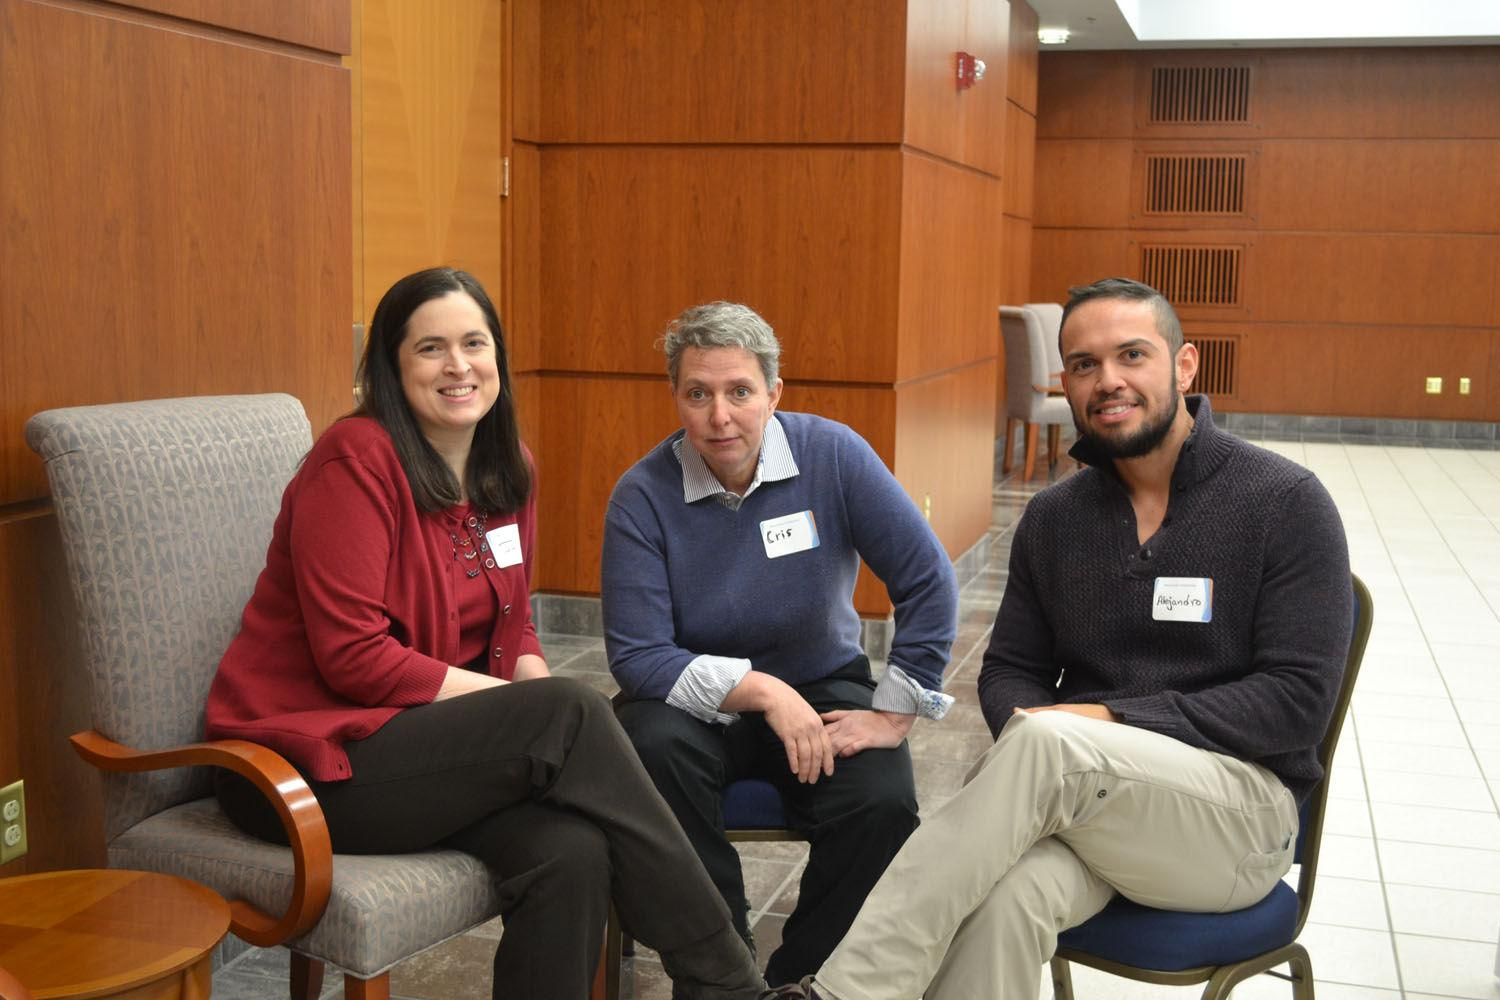 Co-Chairs Julie Dowling, Department of Latino/Latina Studies, Cris Mayo, of the College of Education, and Alejandro Gomez Vice-Chair of the Committee from the Counseling Center, organized a round-table discussion on issues impacting the LGBT community at the Alice Campbell Alumni Center on February 20.